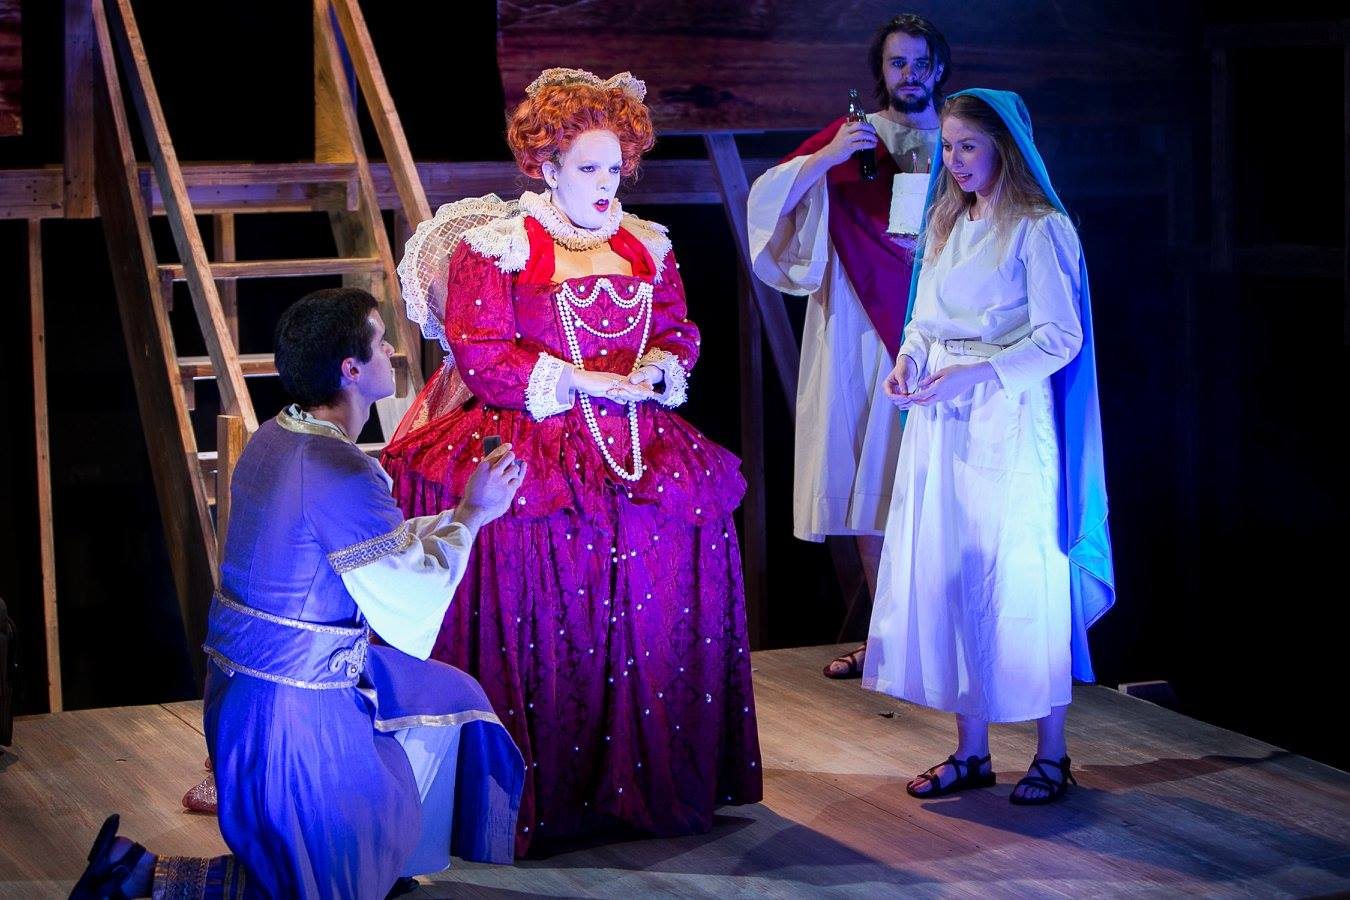 P (Pontius), Queen Elizabeth I, J (Jesus) and Mary 1 (Virgin Mary) from Sarah Ruhl's Passion Play costume design by Katharine Tarkulich